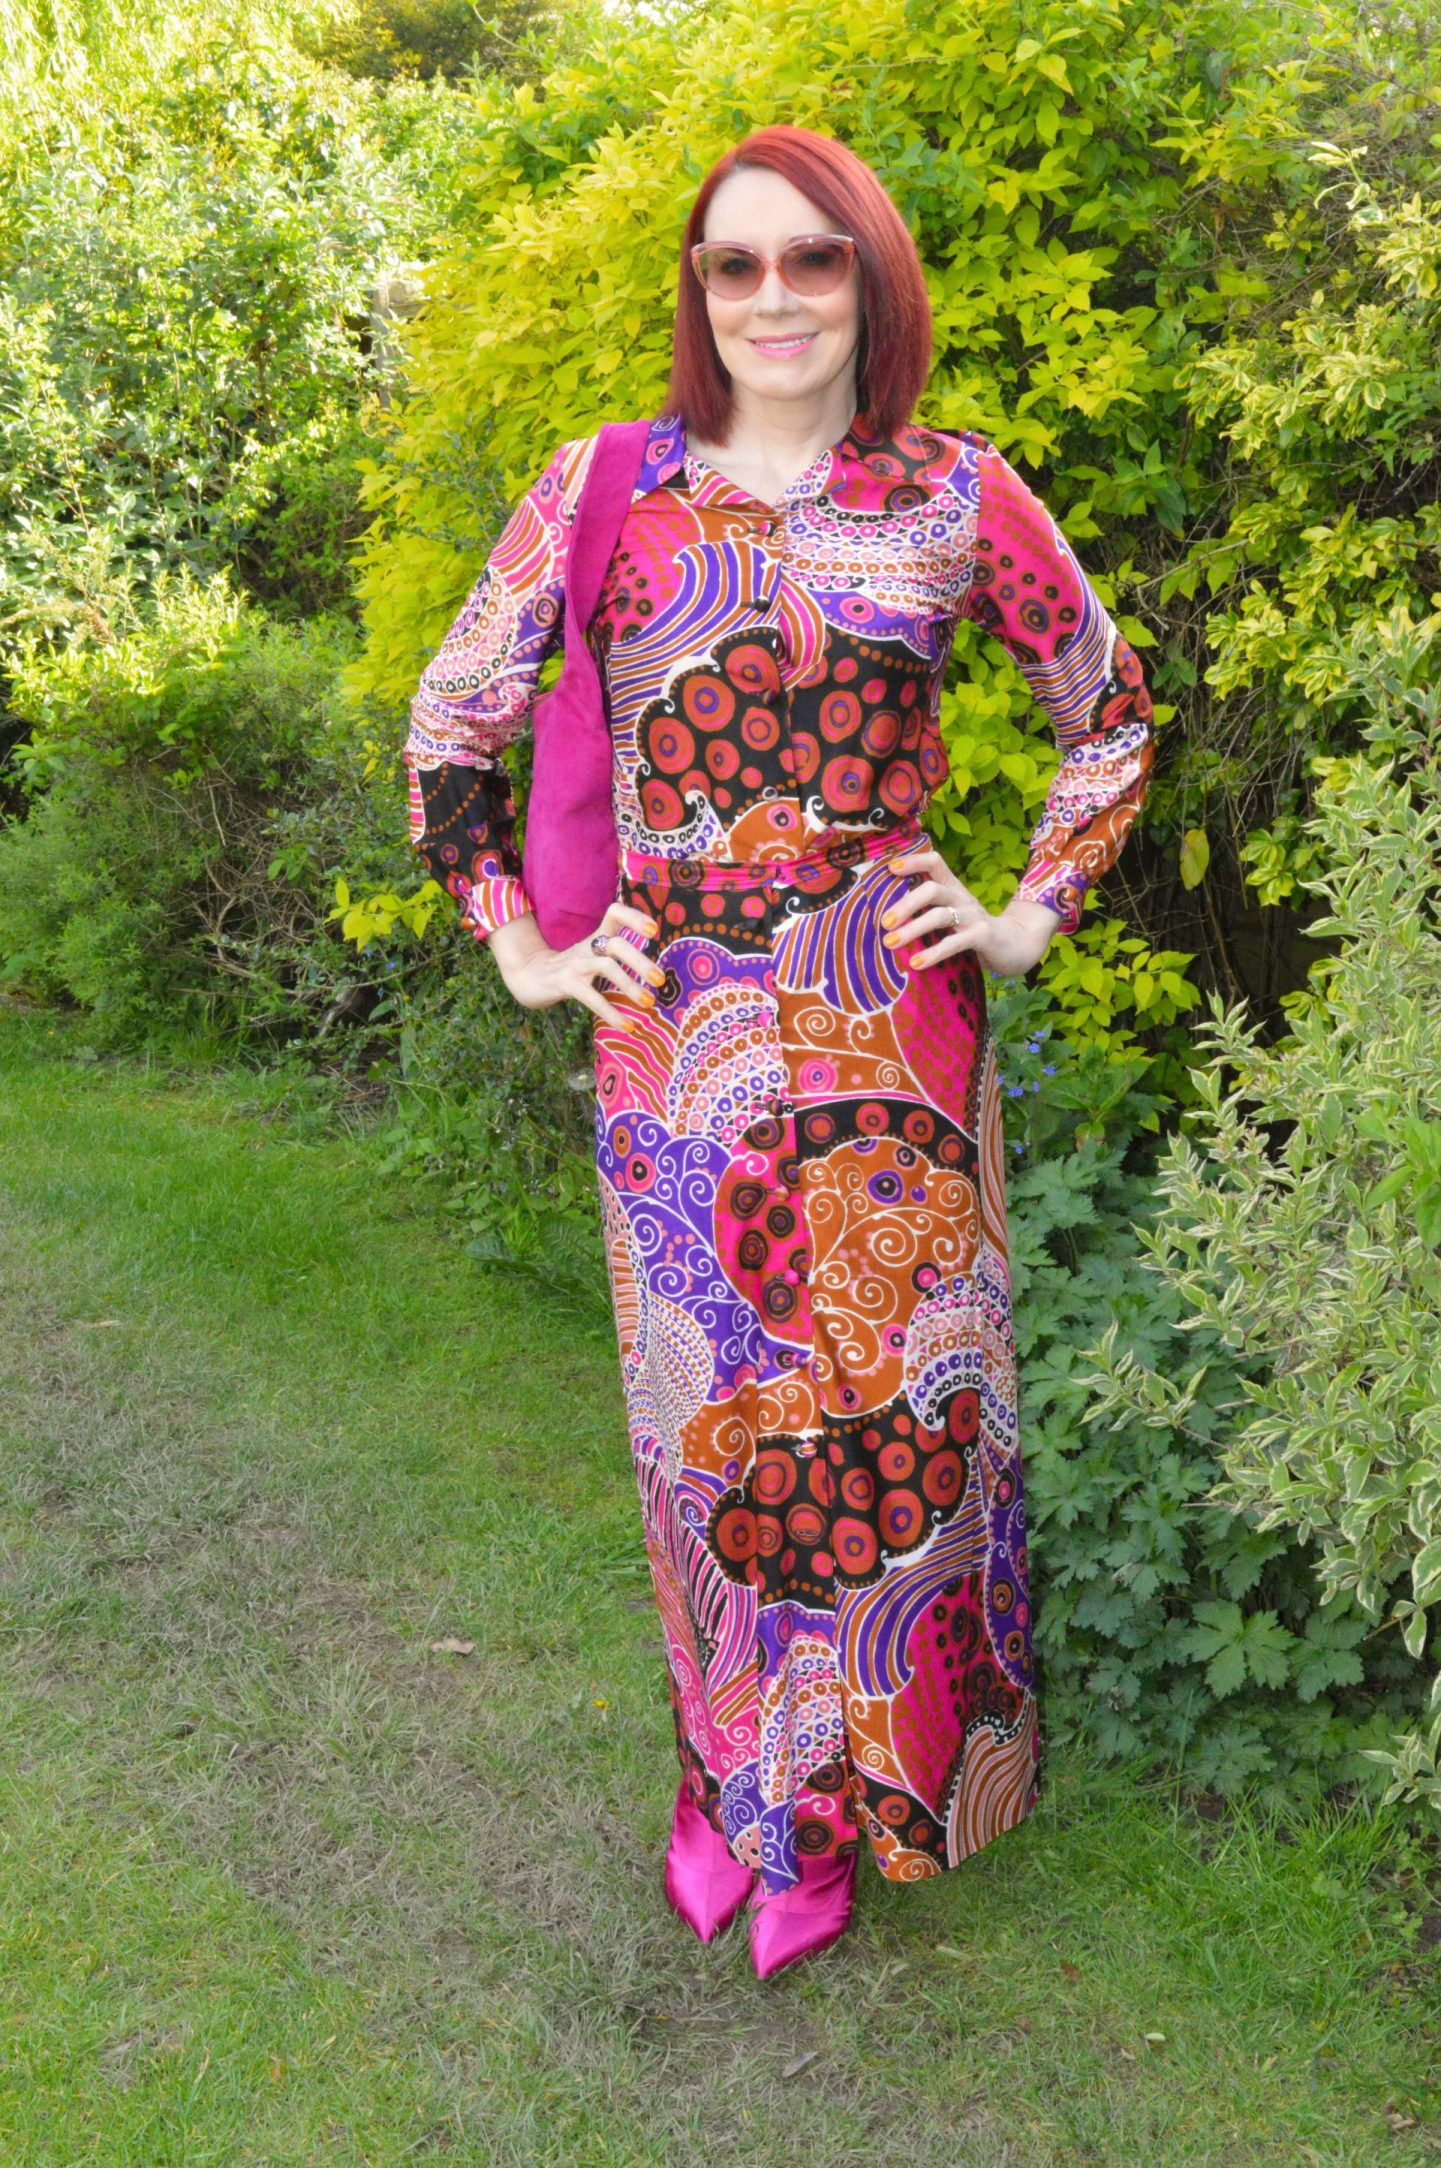 Vintage Blouse and Skirt